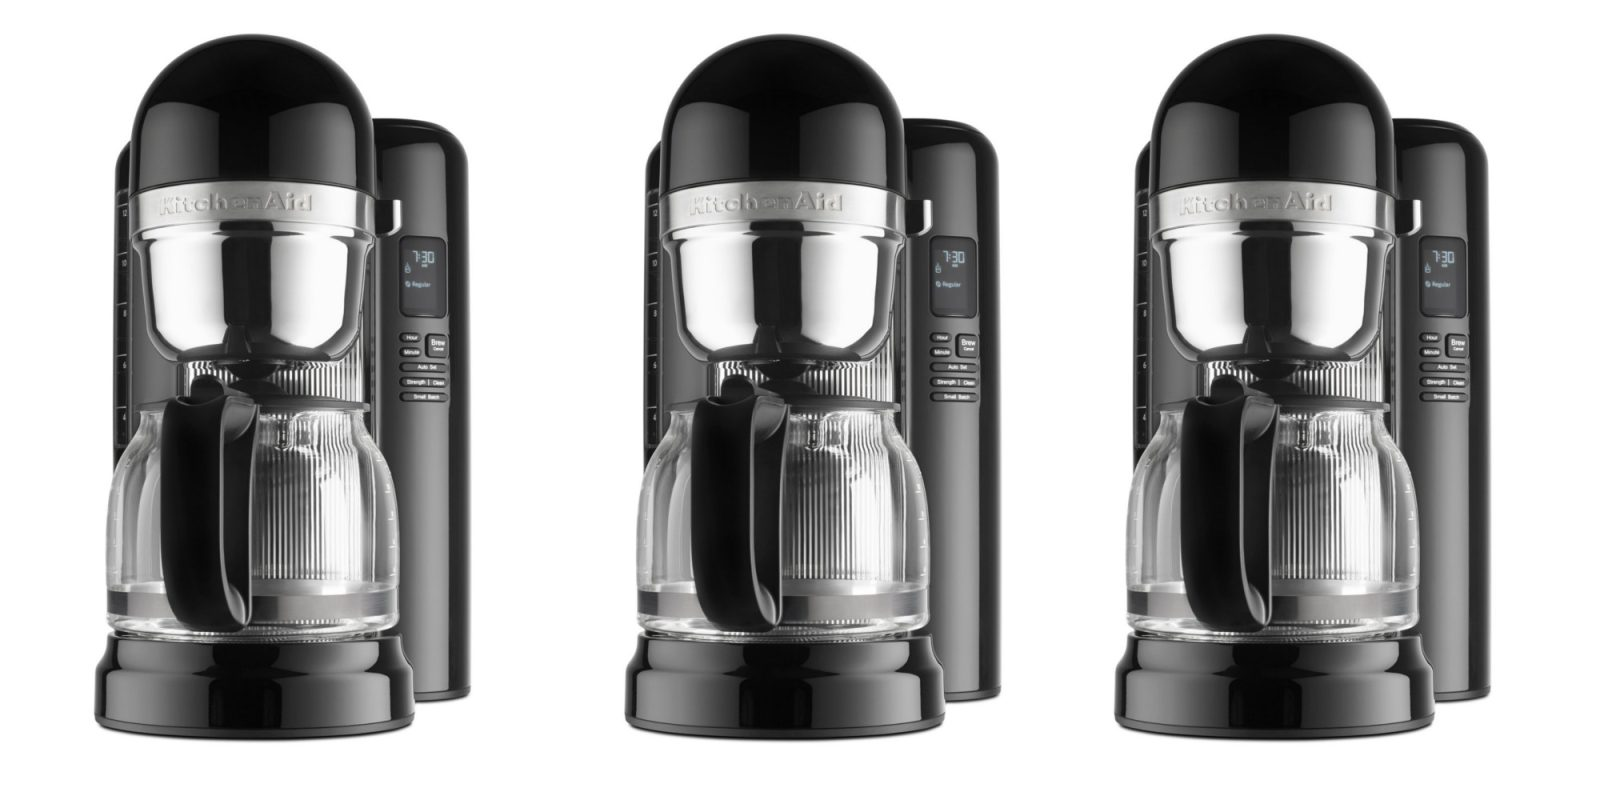 This attractive KitchenAid 12-cup Coffee Maker falls to $60 today ...